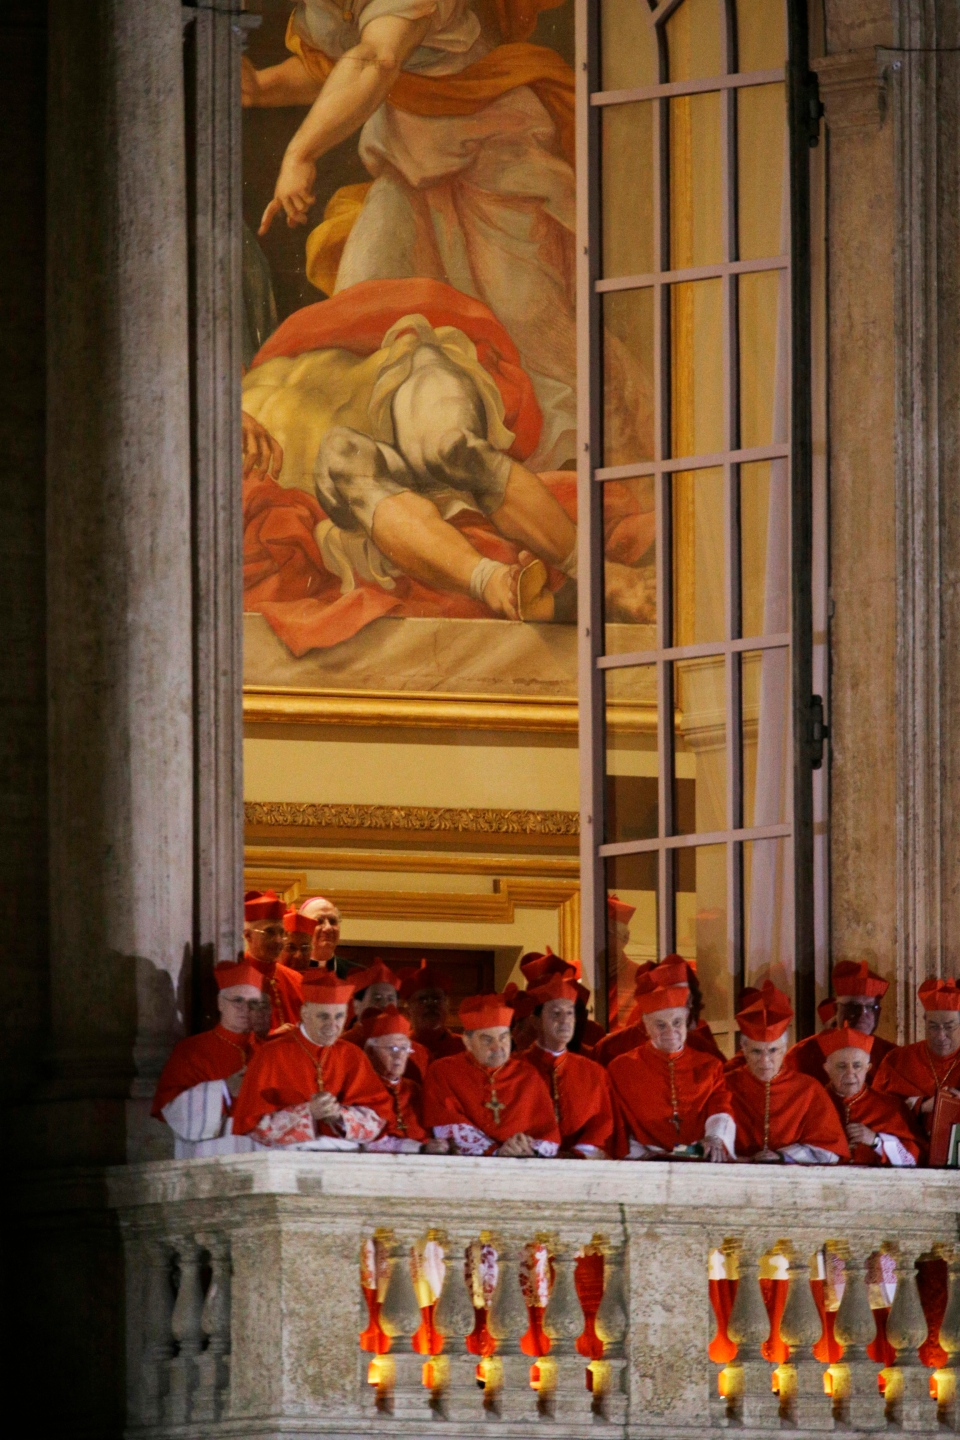 Cardinals watch as Pope Francis speaks to the crowd from the central balcony of St. Peter's Basilica at the Vatican, Wednesday, March 13, 2013. Cardinal Jorge Bergoglio, who chose the name of Francis is the 266th pontiff of the Roman Catholic Church (AP Photo/Andrew Medichini)